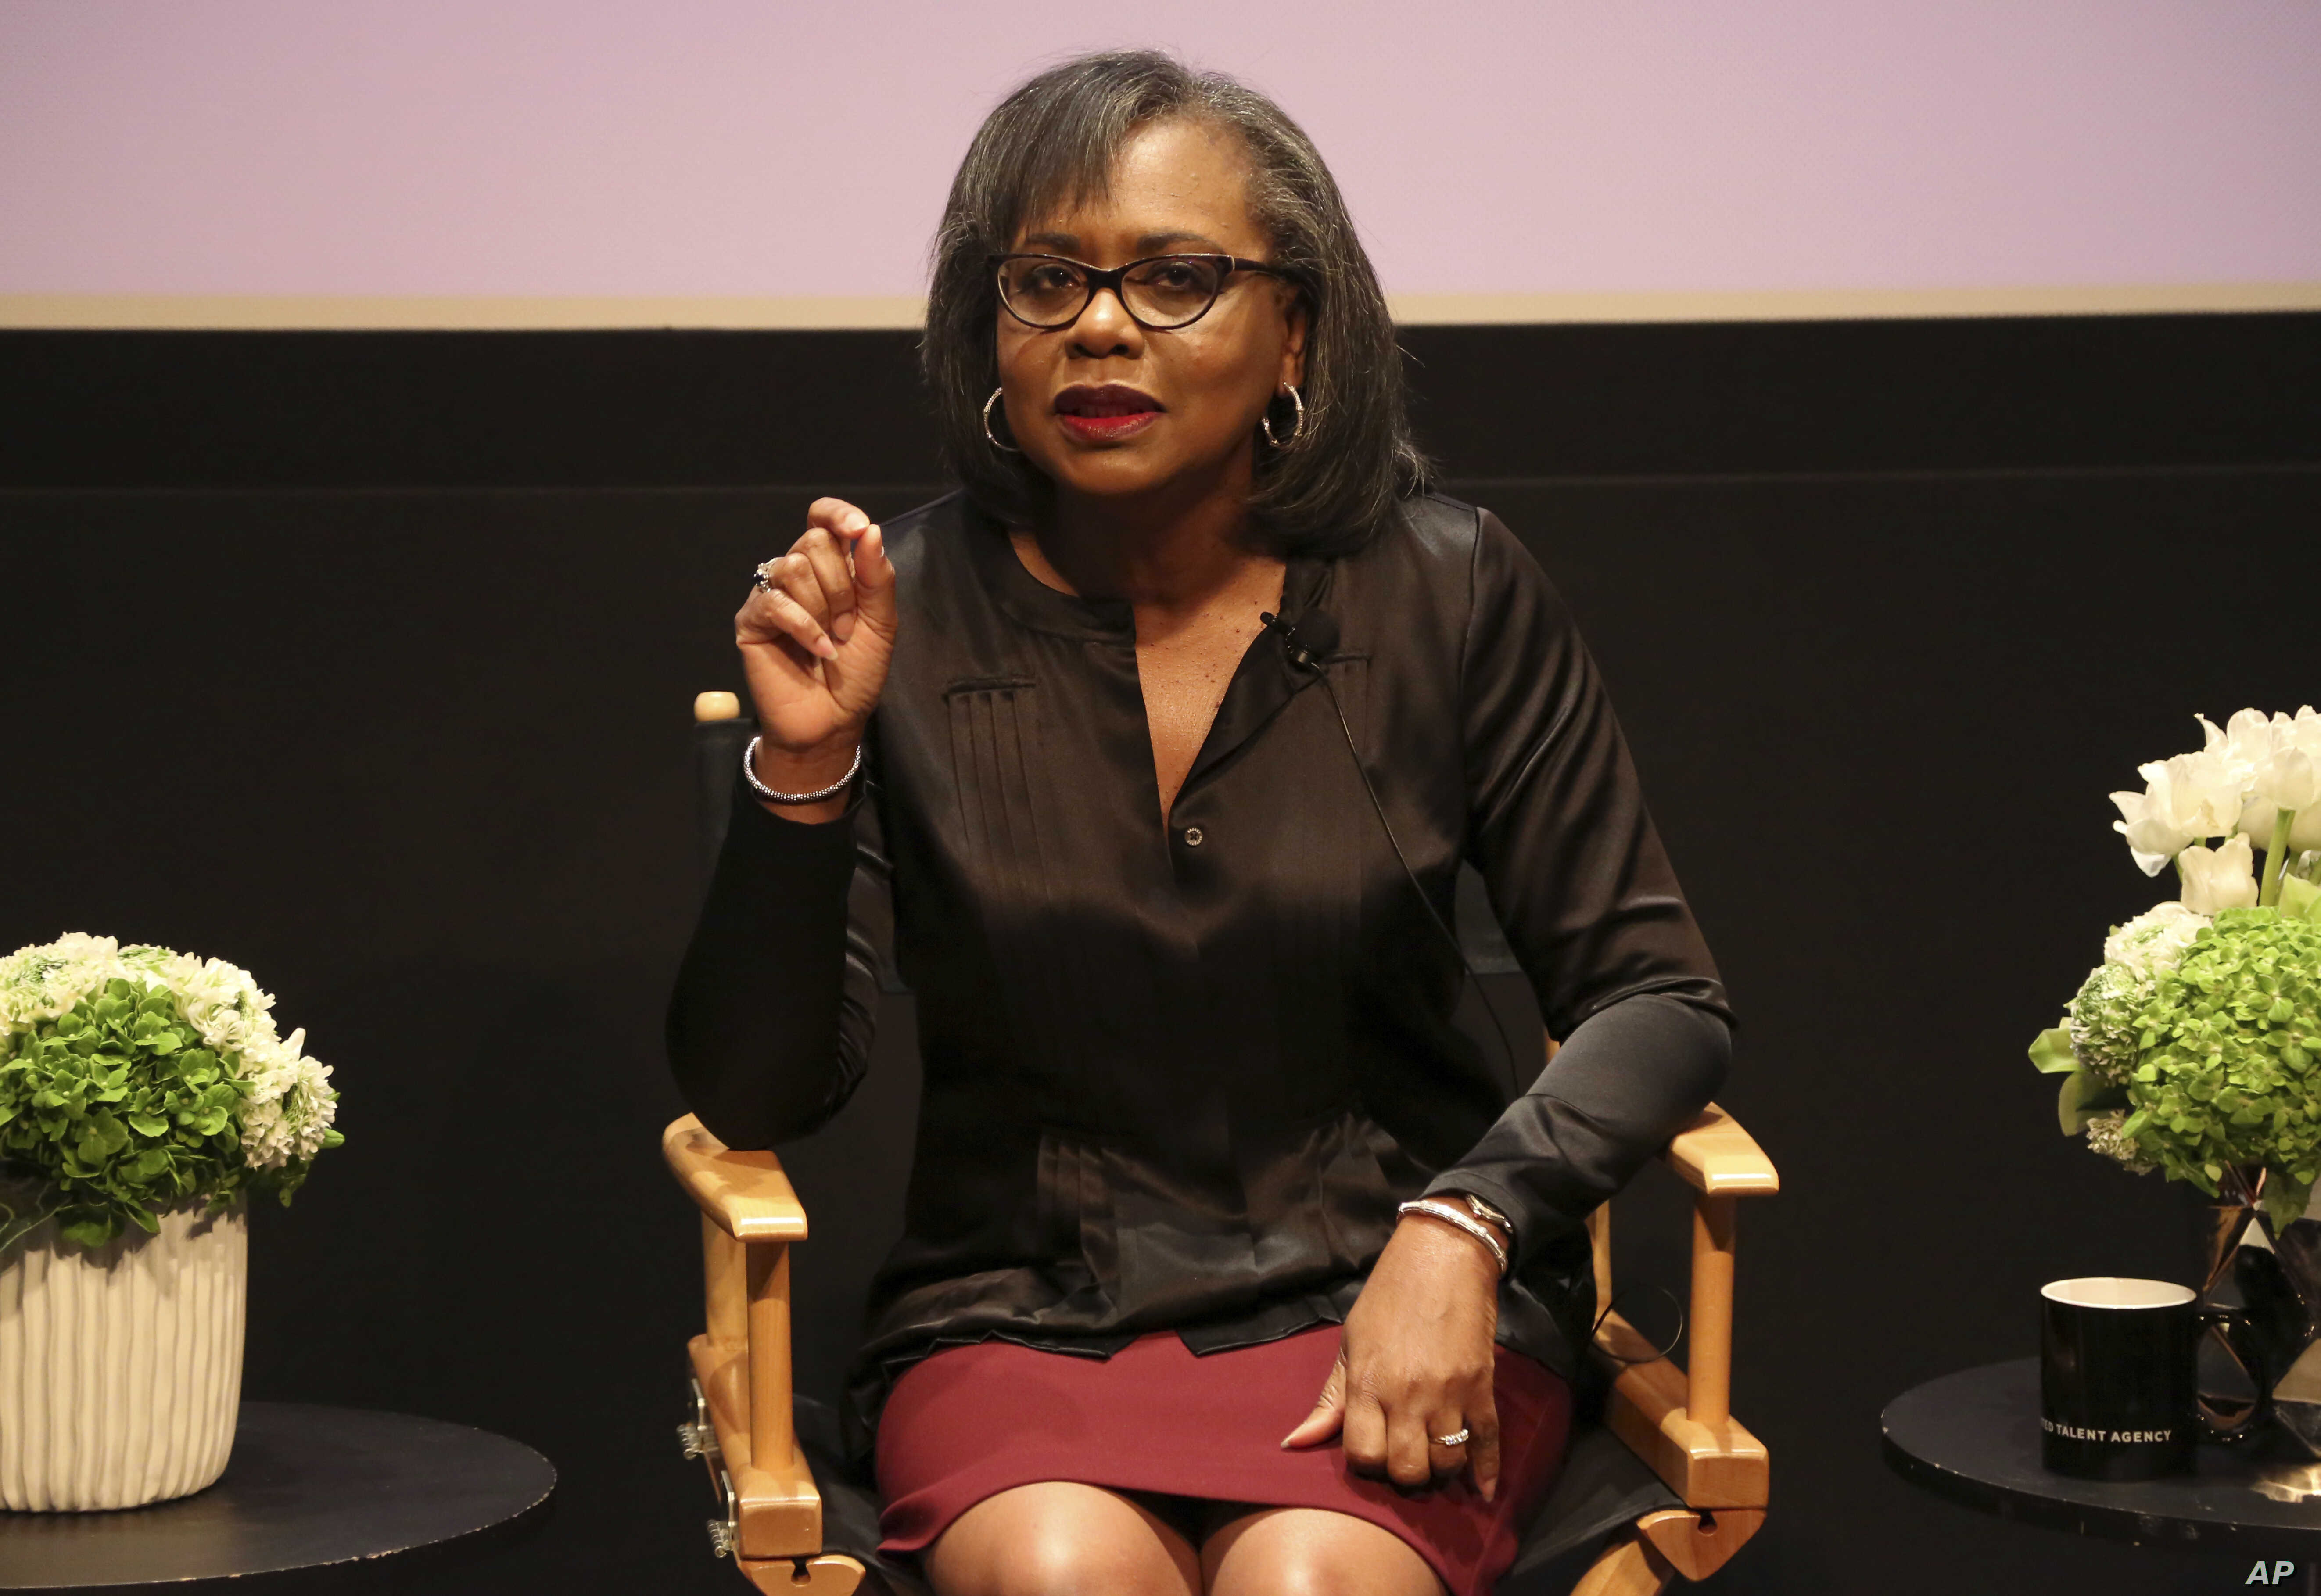 Anita Hill speaks at a discussion about sexual harassment at United Talent Agency in Beverly Hills, California, Dec. 8, 2017. Hill, who was one of the first women to bring the issue of sexual harassment into American public discourse in the 1980s, ha